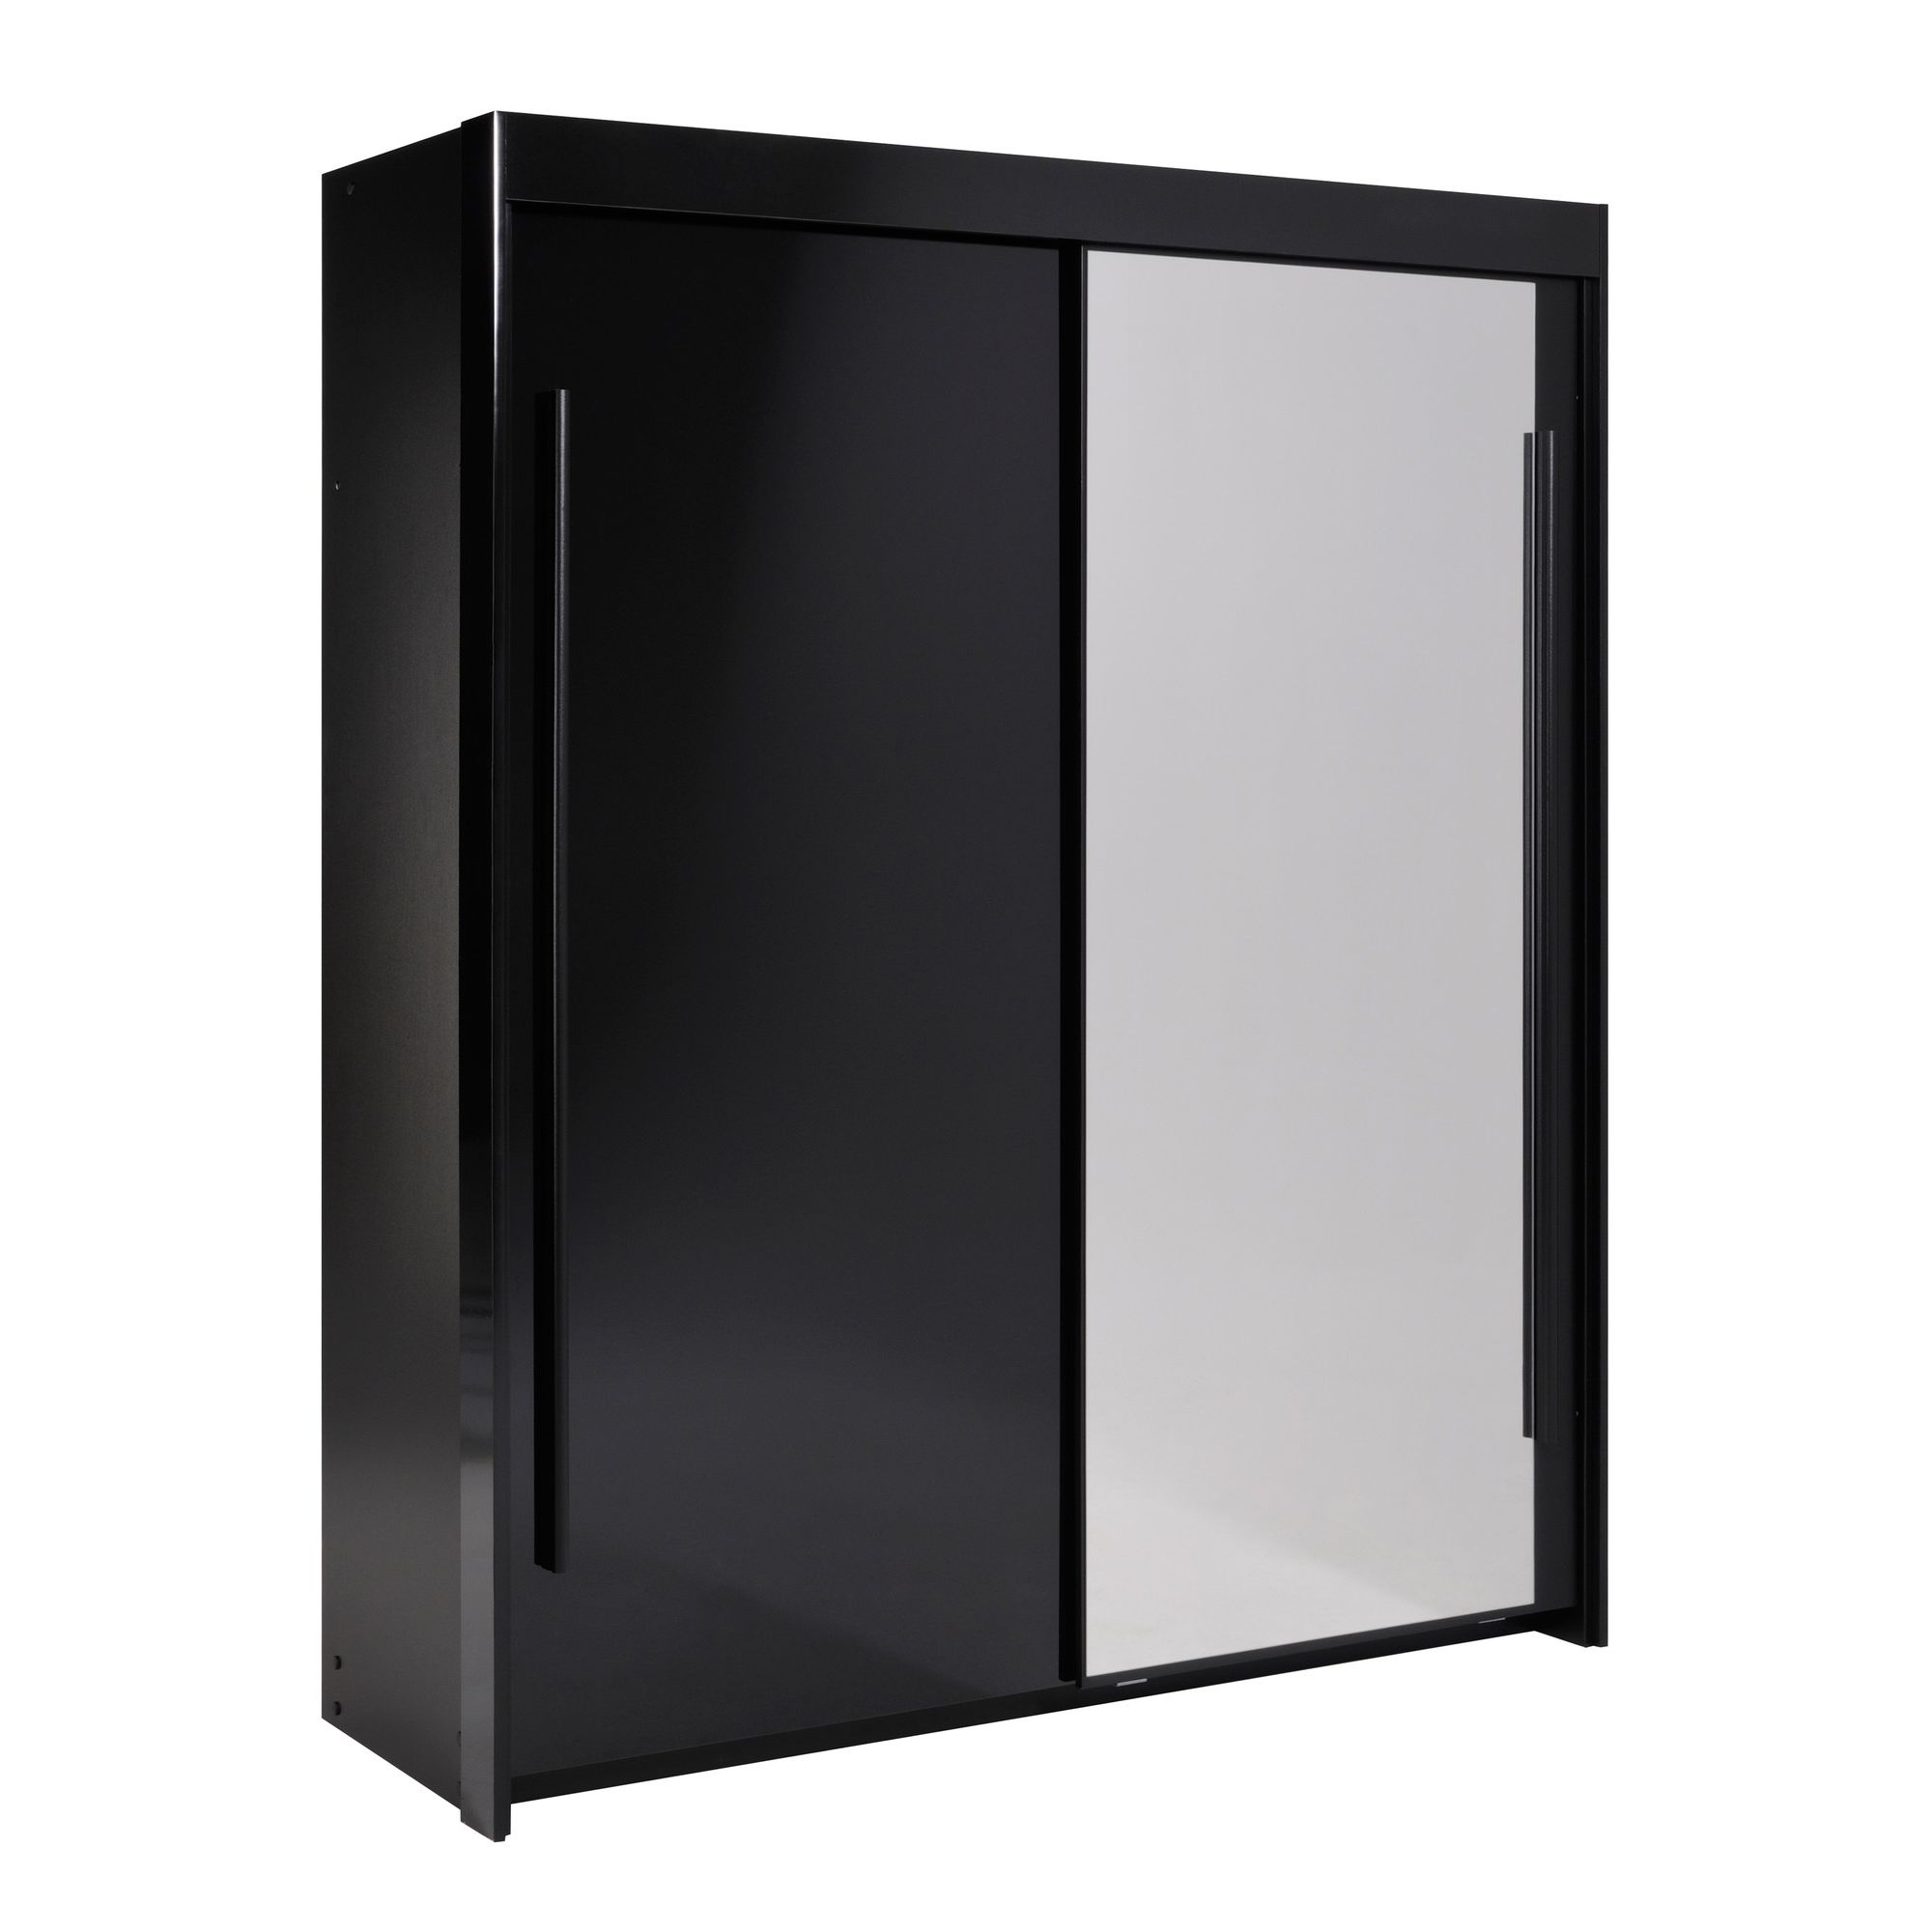 Parisot Dark Sliding Door Wardrobe at Tesco Direct